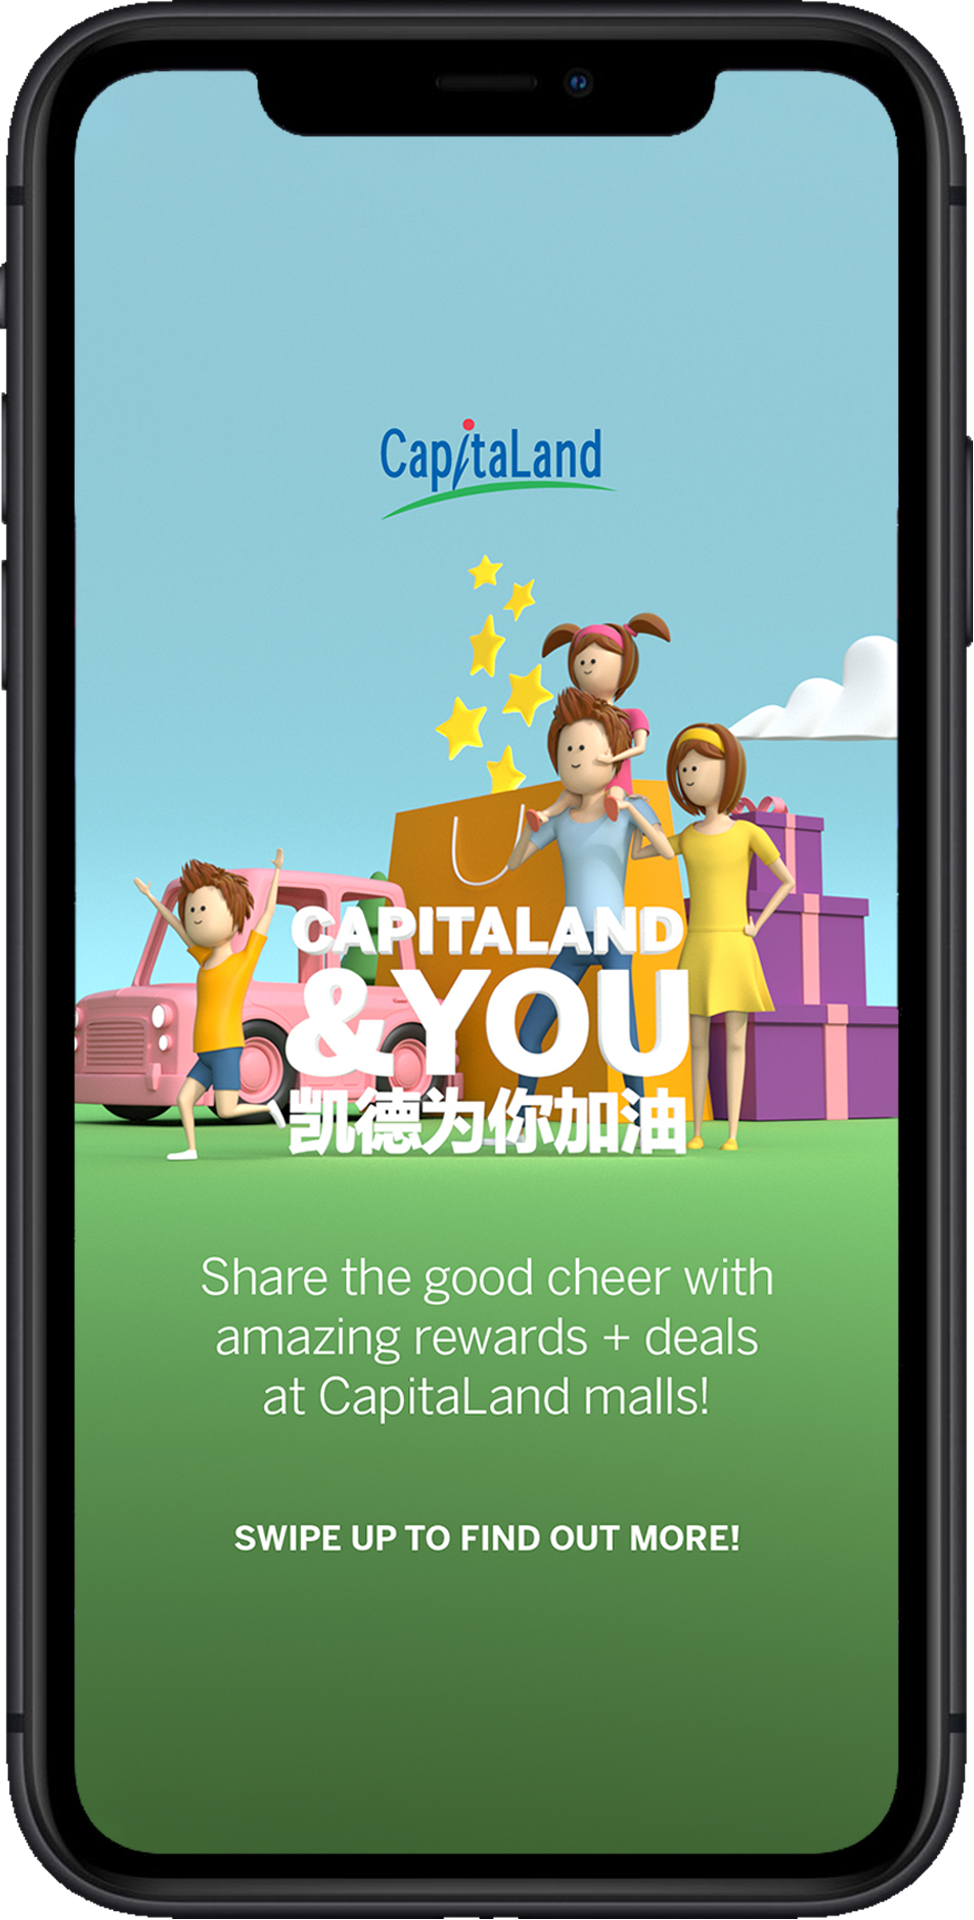 Capitaland and You (Instagram Story Ad 1)